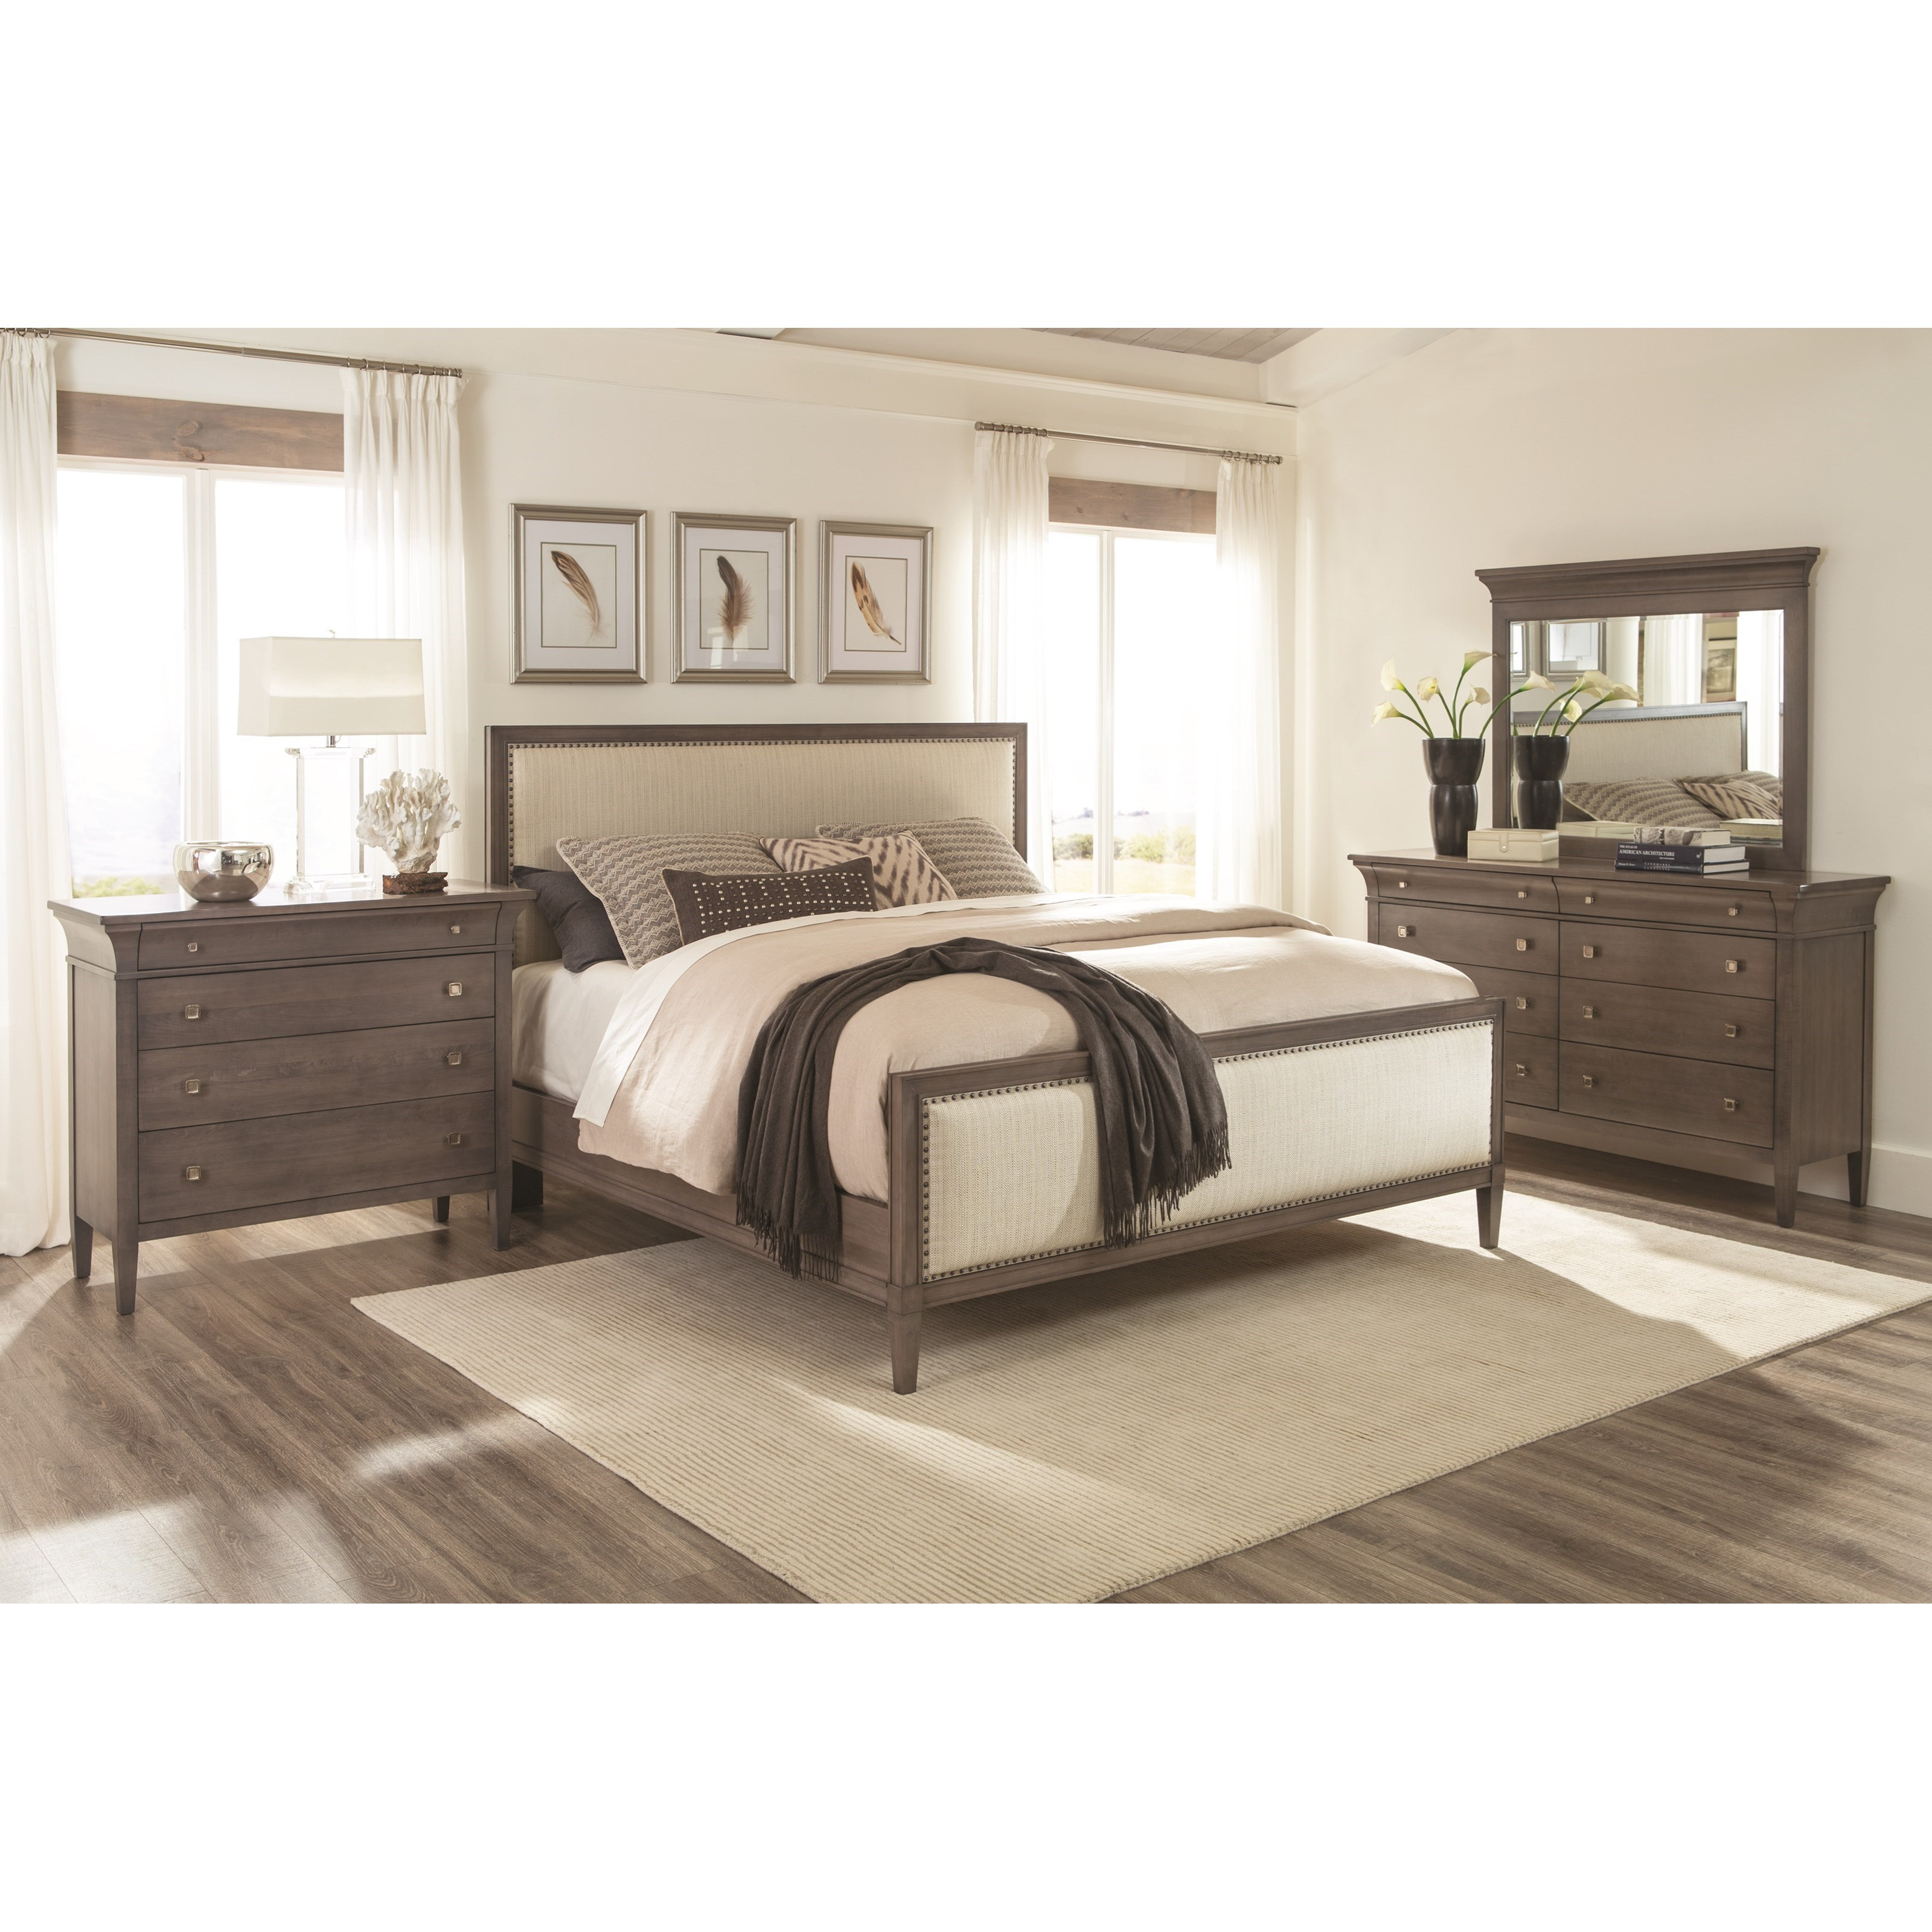 Prominence Queen Bedroom Group by Durham at Stoney Creek Furniture